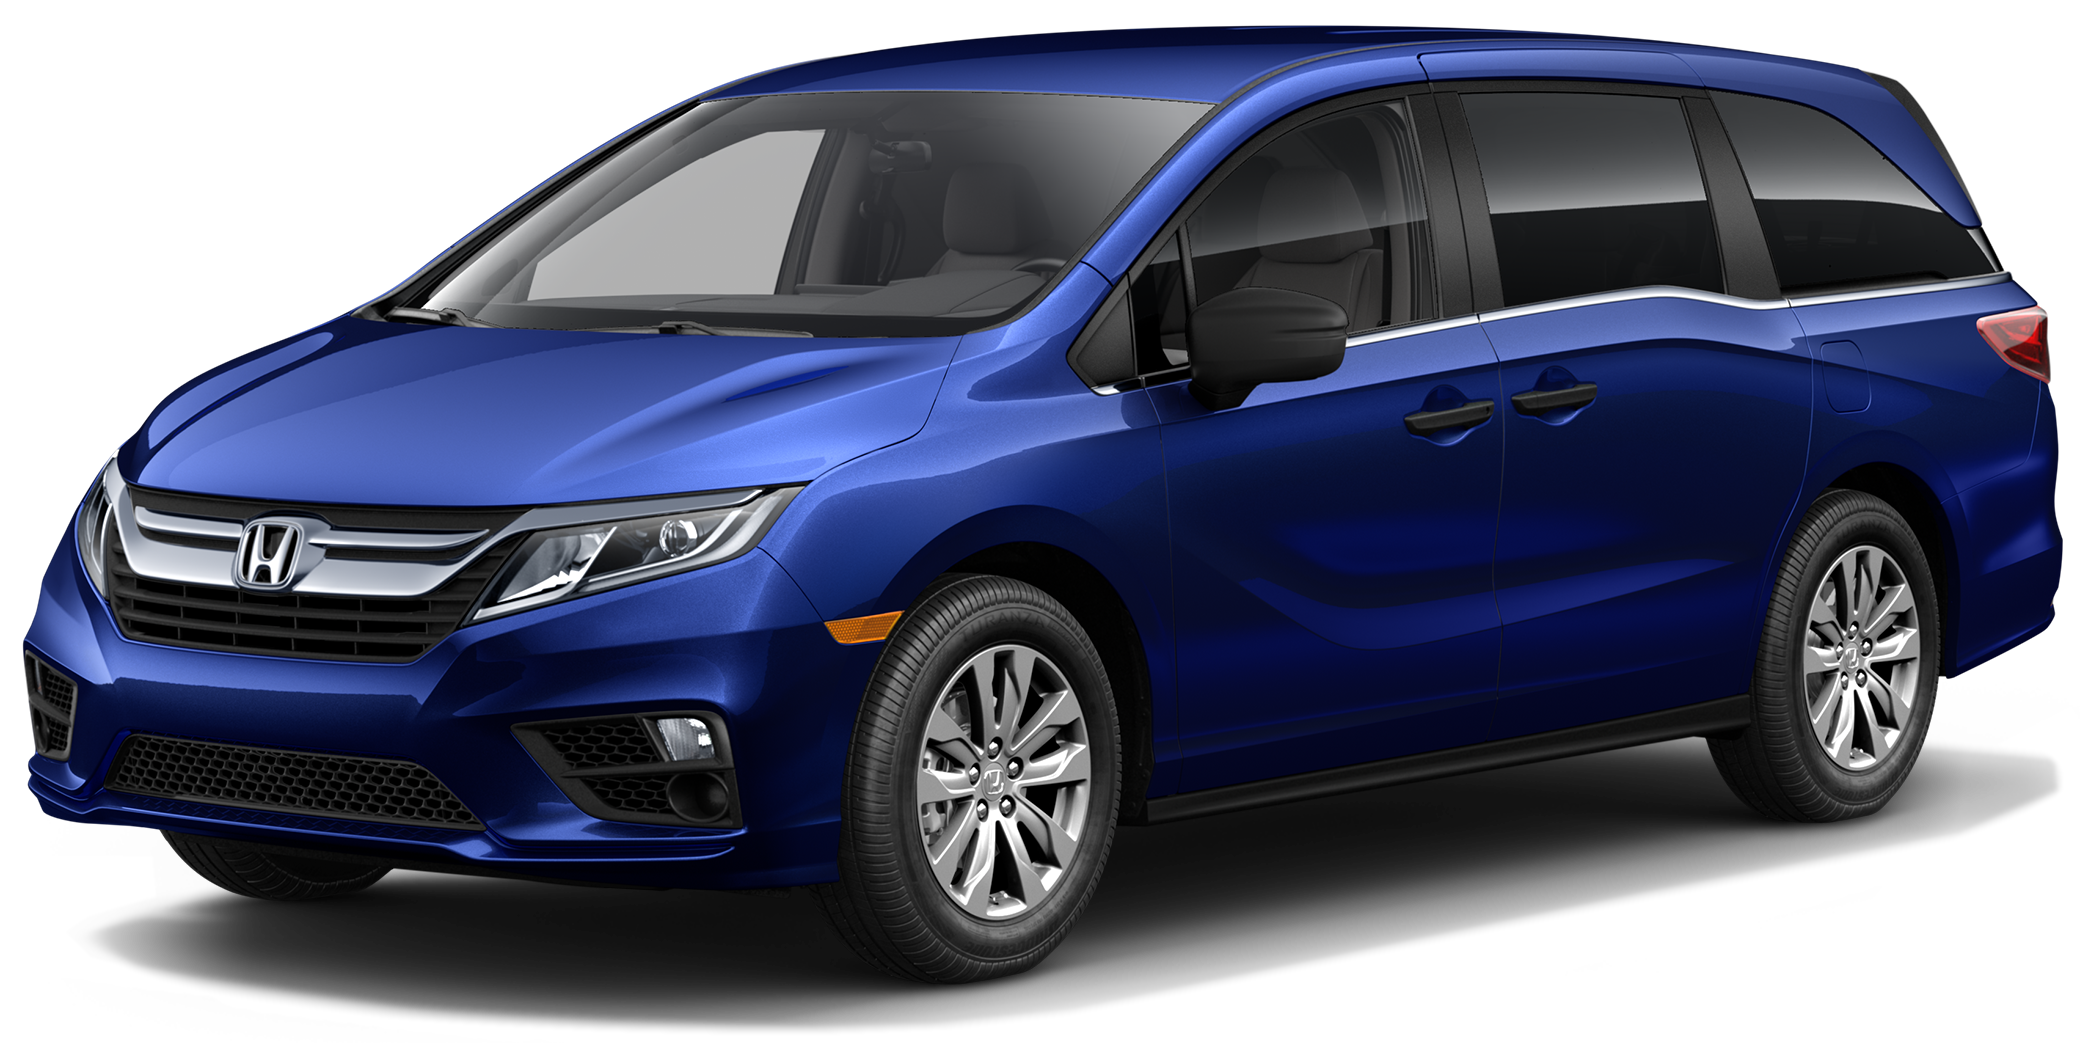 release car and drive price honda date specs first odyssey